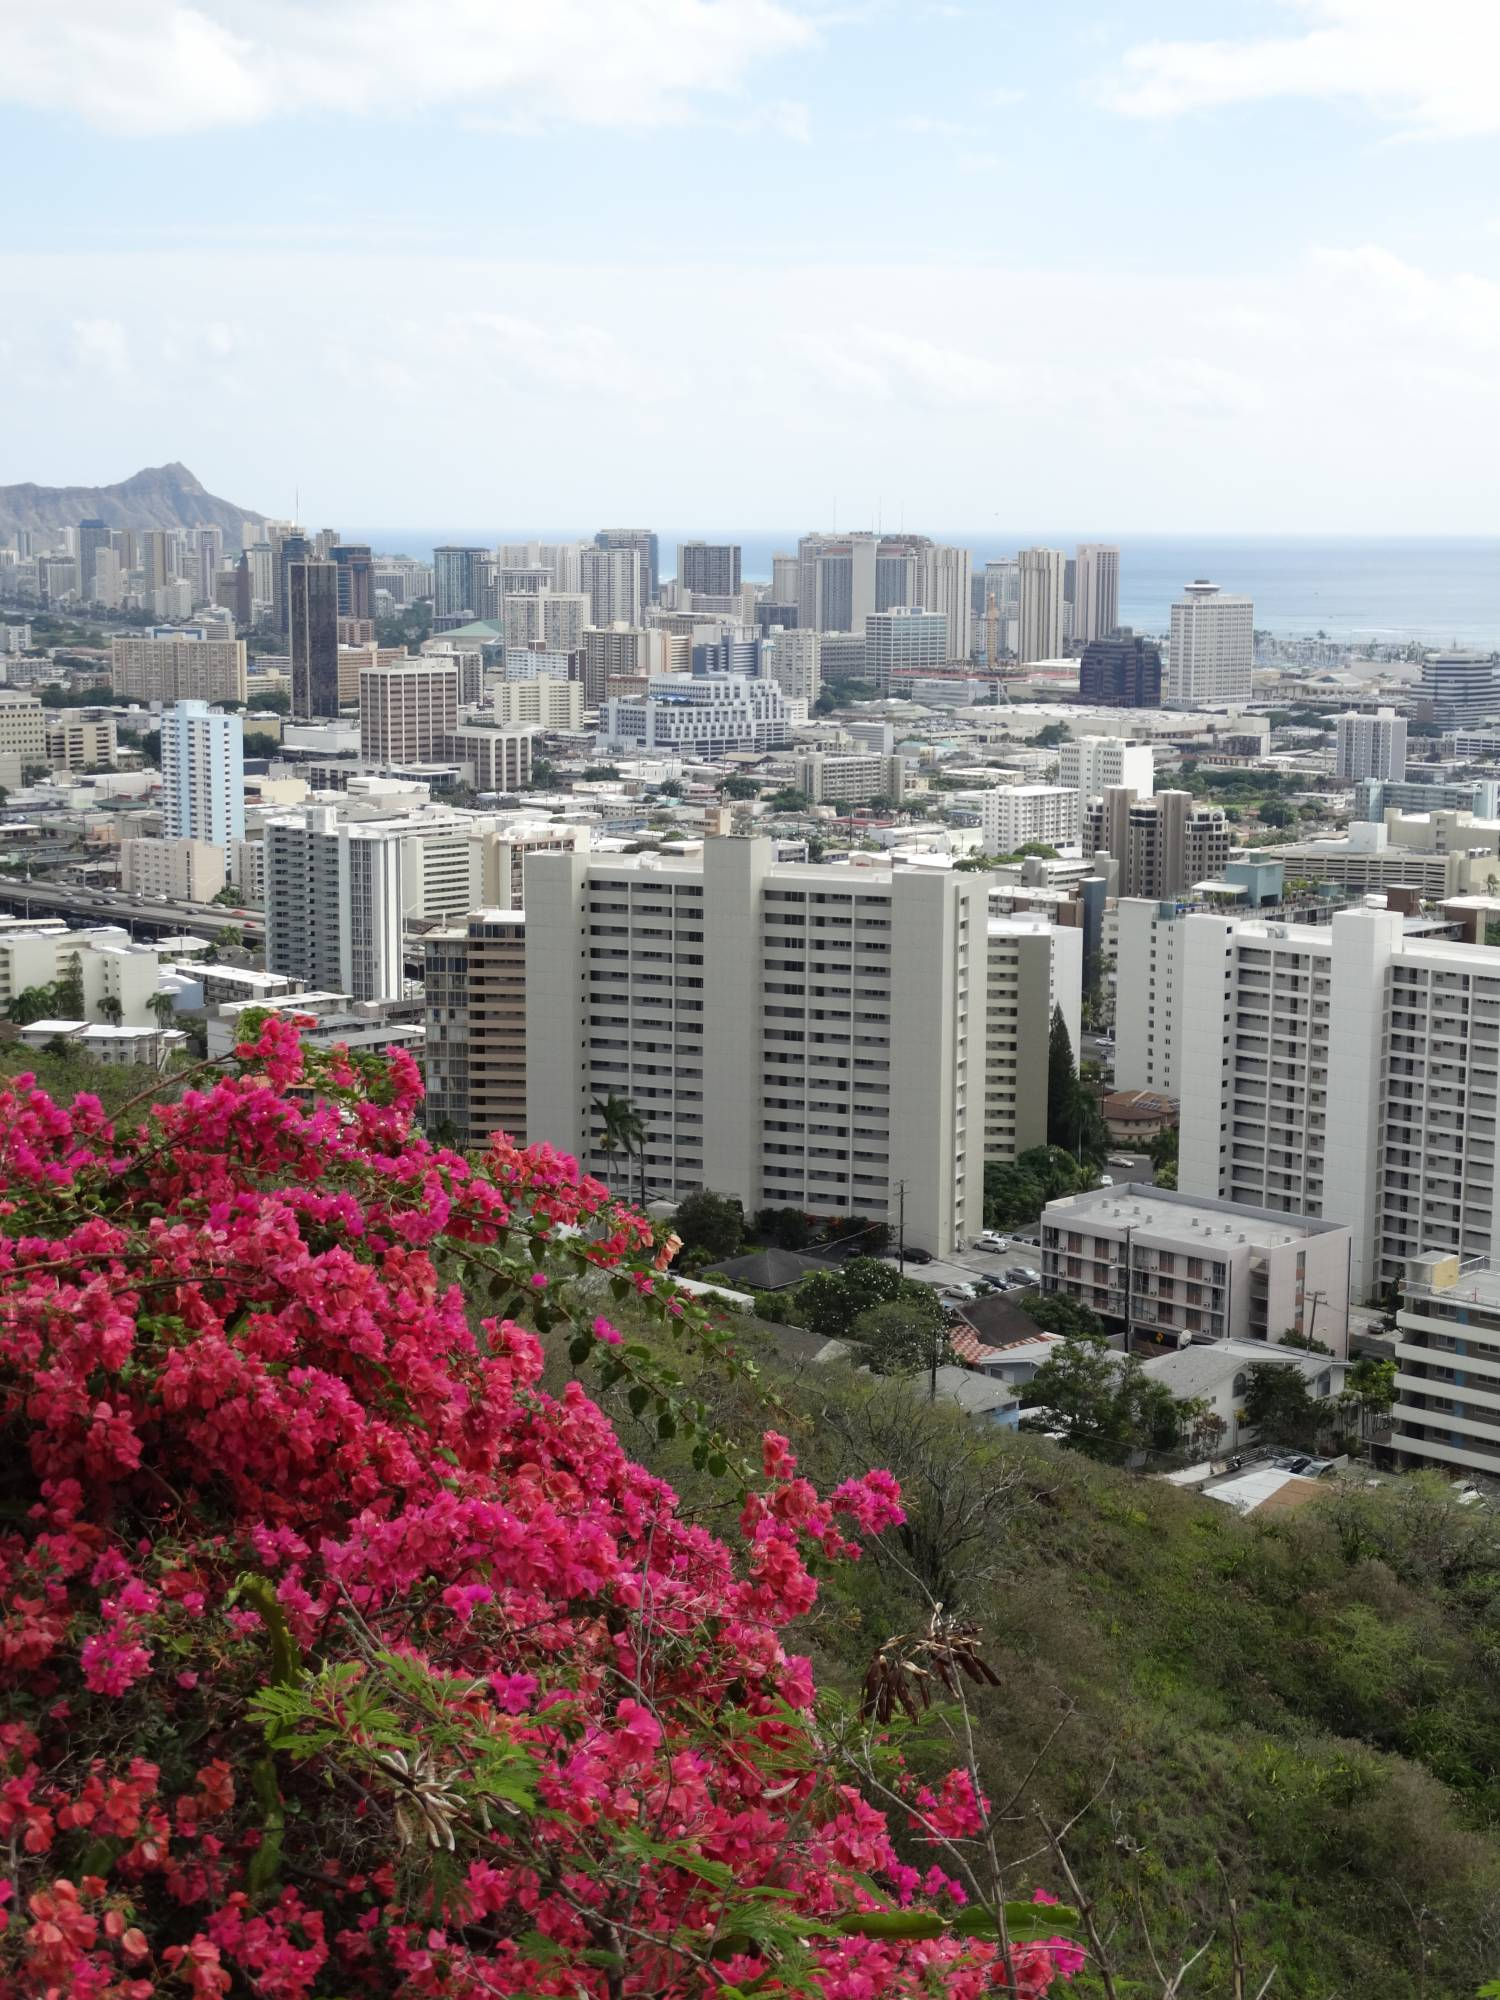 Explore the cities of Honolulu and Waikiki while visiting Aulani, a Disney Resort and Spa in Oahu |PassPorter.com